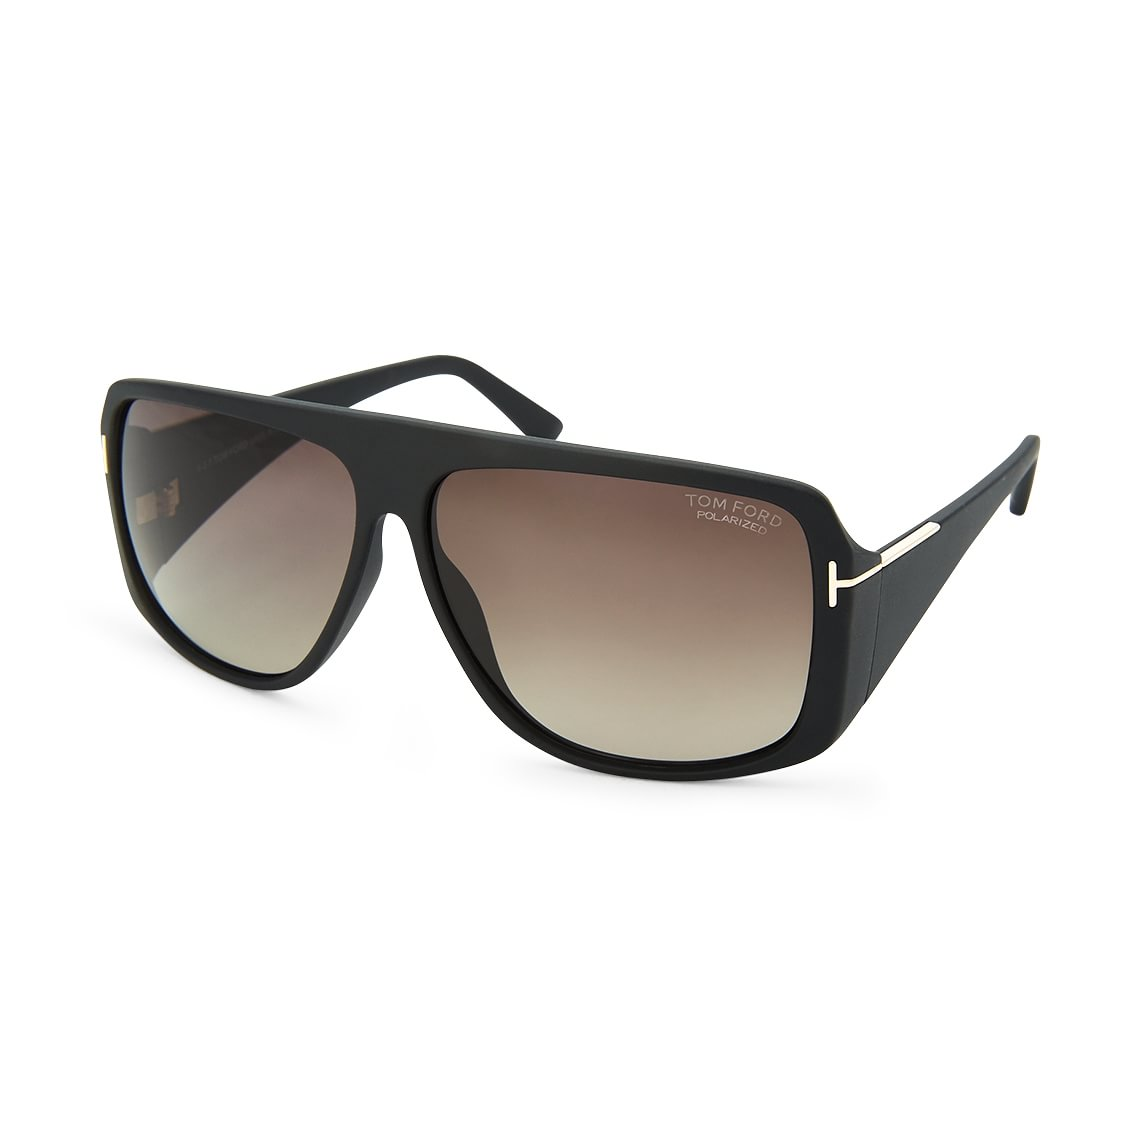 Tom Ford TF433 02B 60